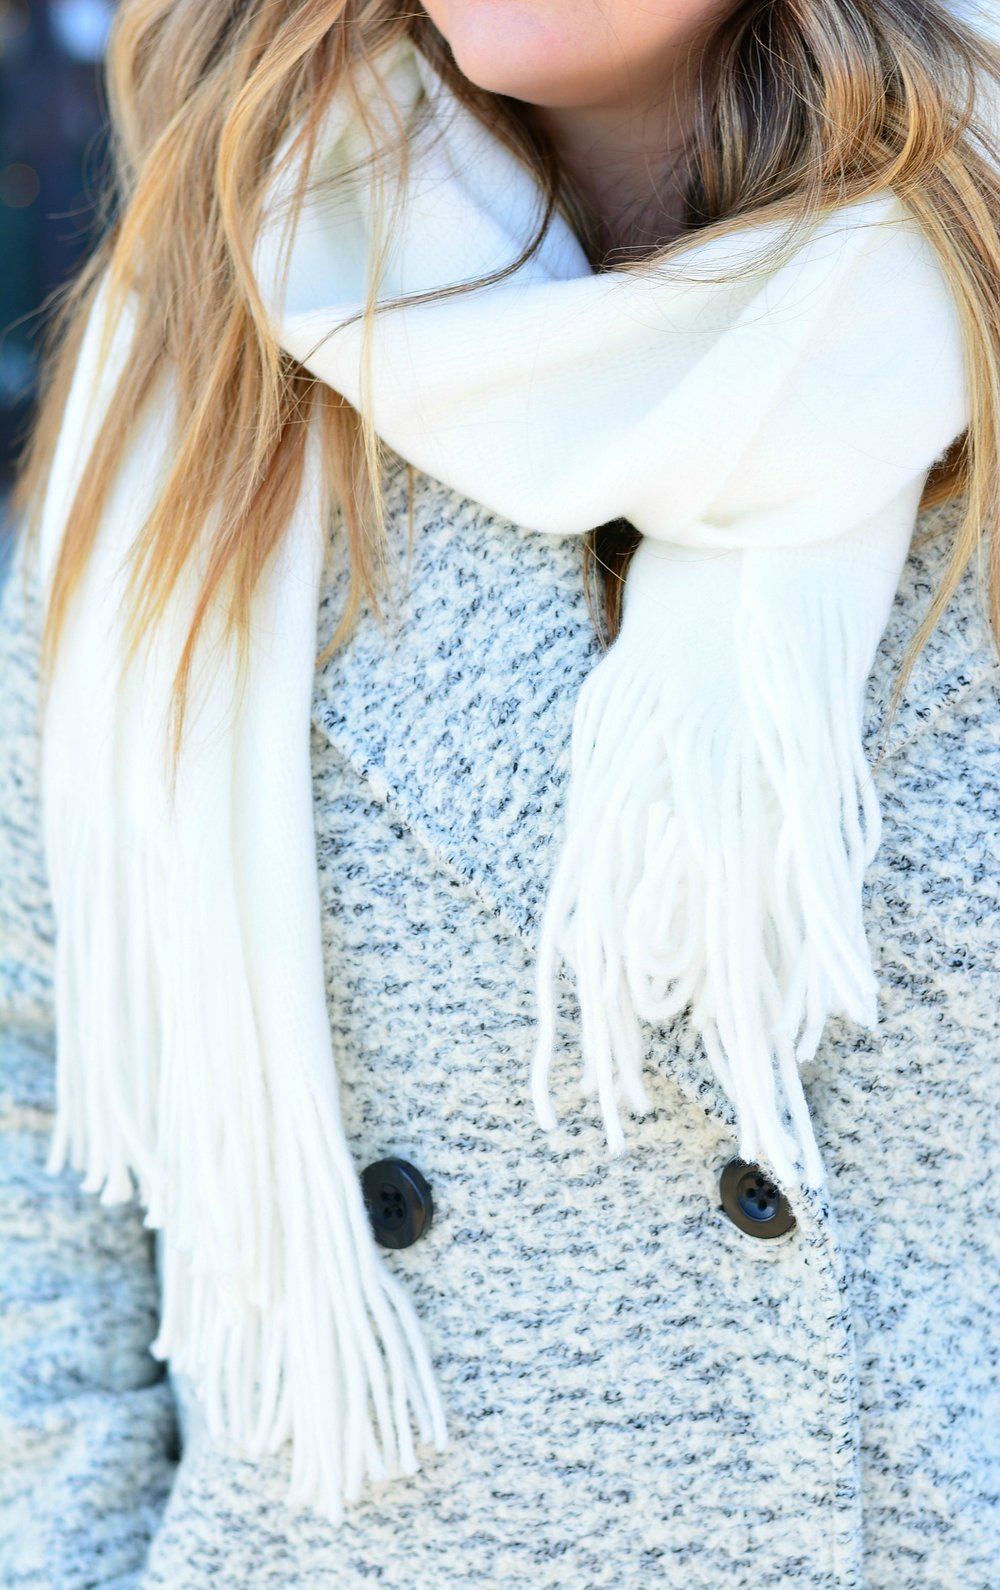 White scarf with gray coat